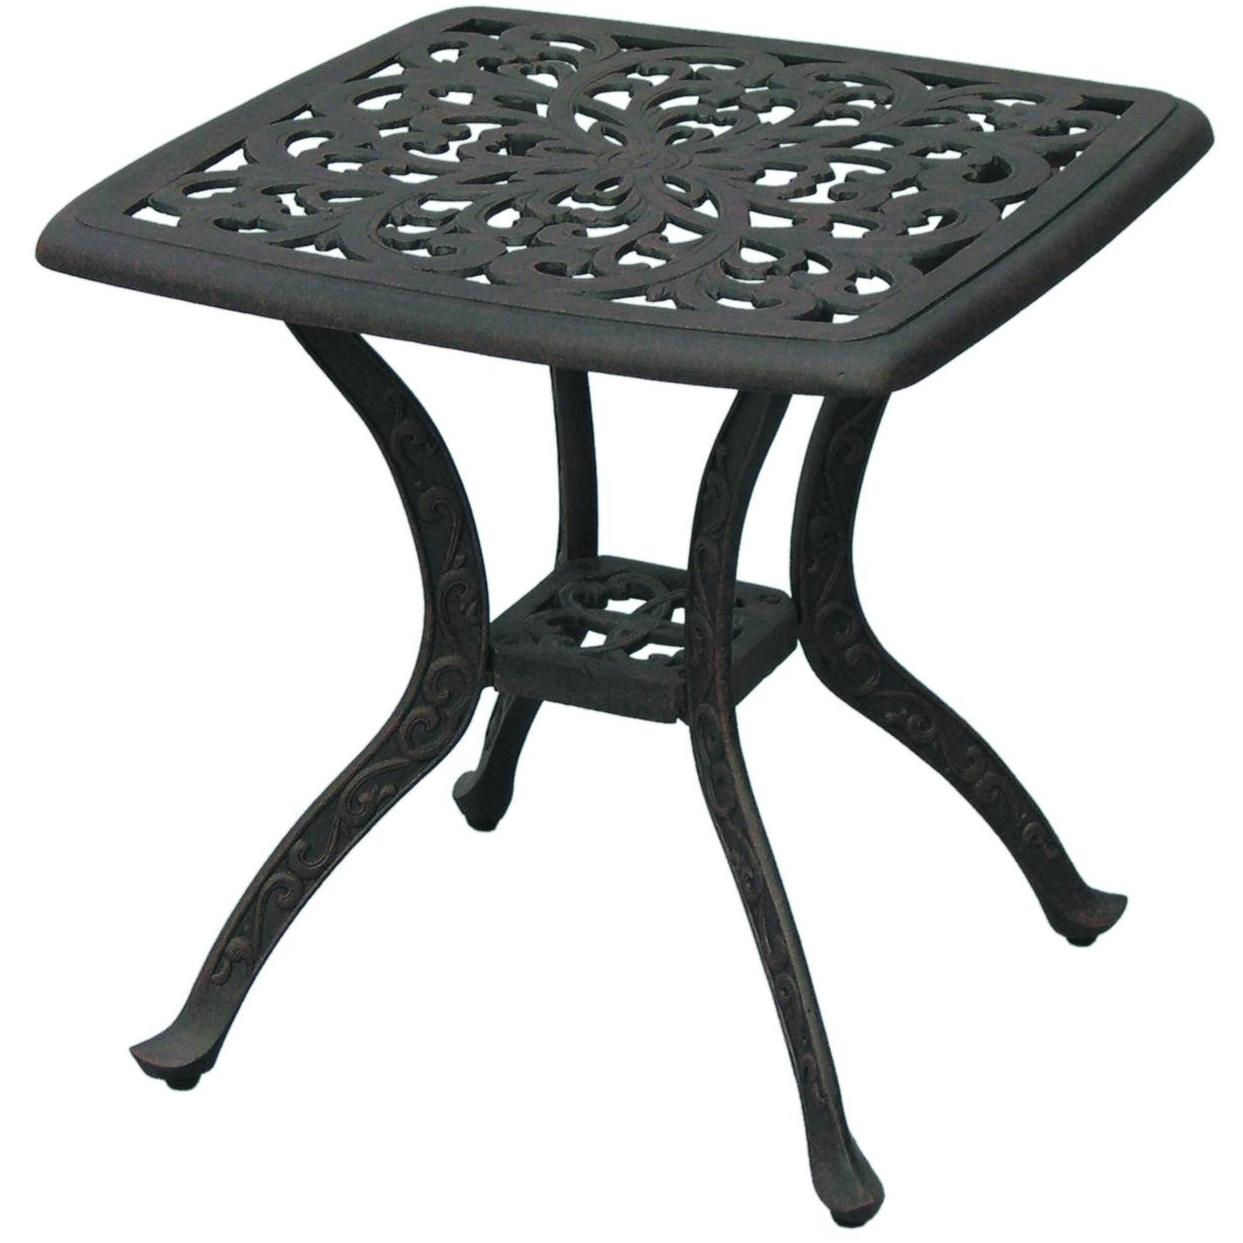 darlee series cast aluminum patio end table square bbq guys outdoor side for decoration ideas parties blue tables living room furniture weathered round red tablecloth coffee barn